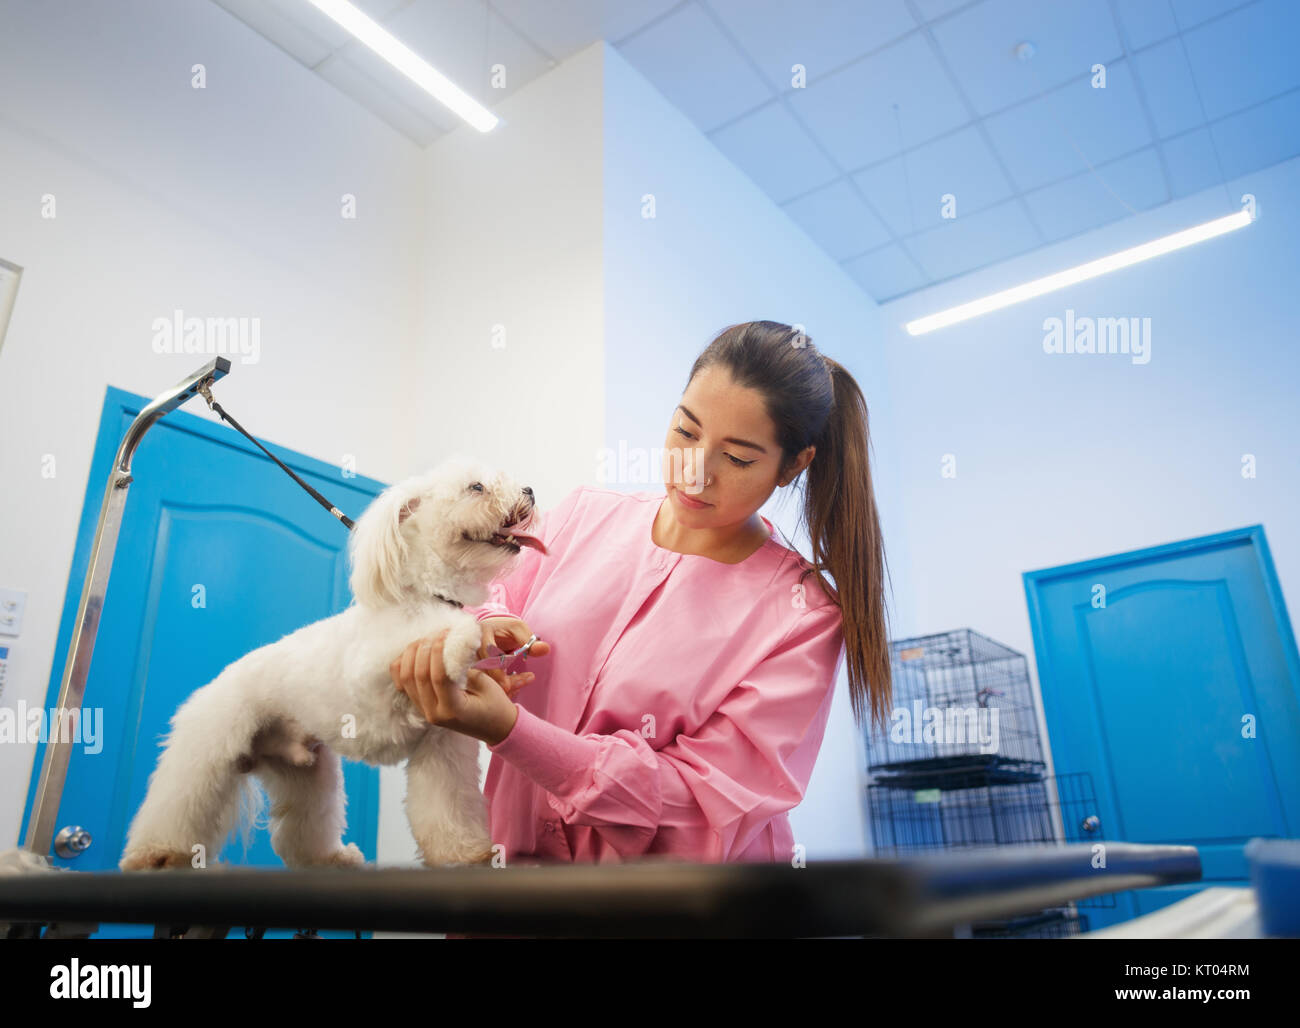 Young woman working in pet shop, trimming dog hair, girl grooming puppy for beauty in store. People, jobs, professions - Stock Image